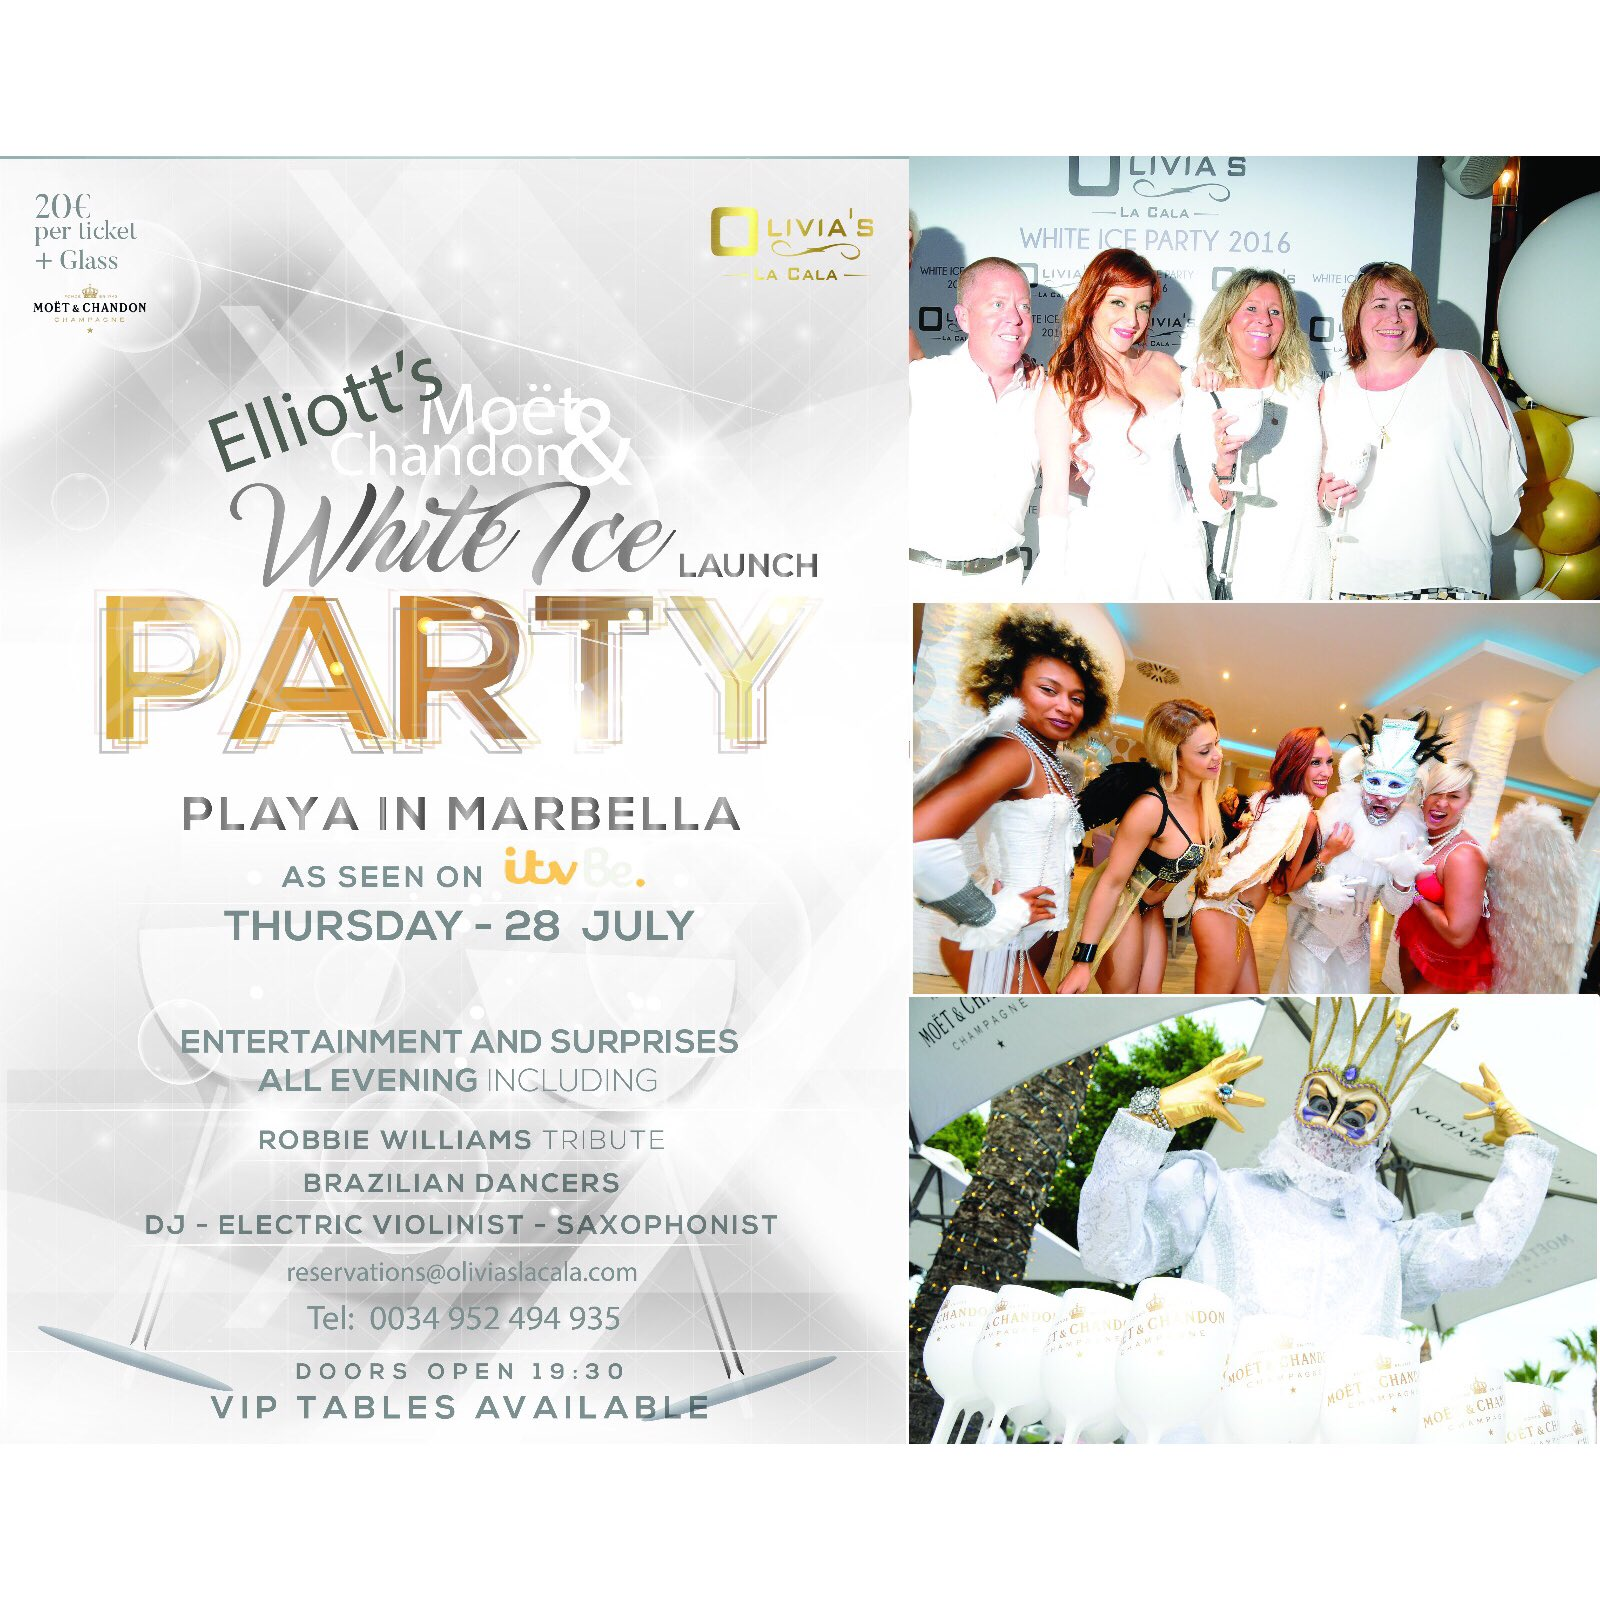 Looking forward to my #MoetChandonWhiteIce party tonight in @oliviaslacala tables sold out... Just drink entry left! https://t.co/3skYe3ZTZI